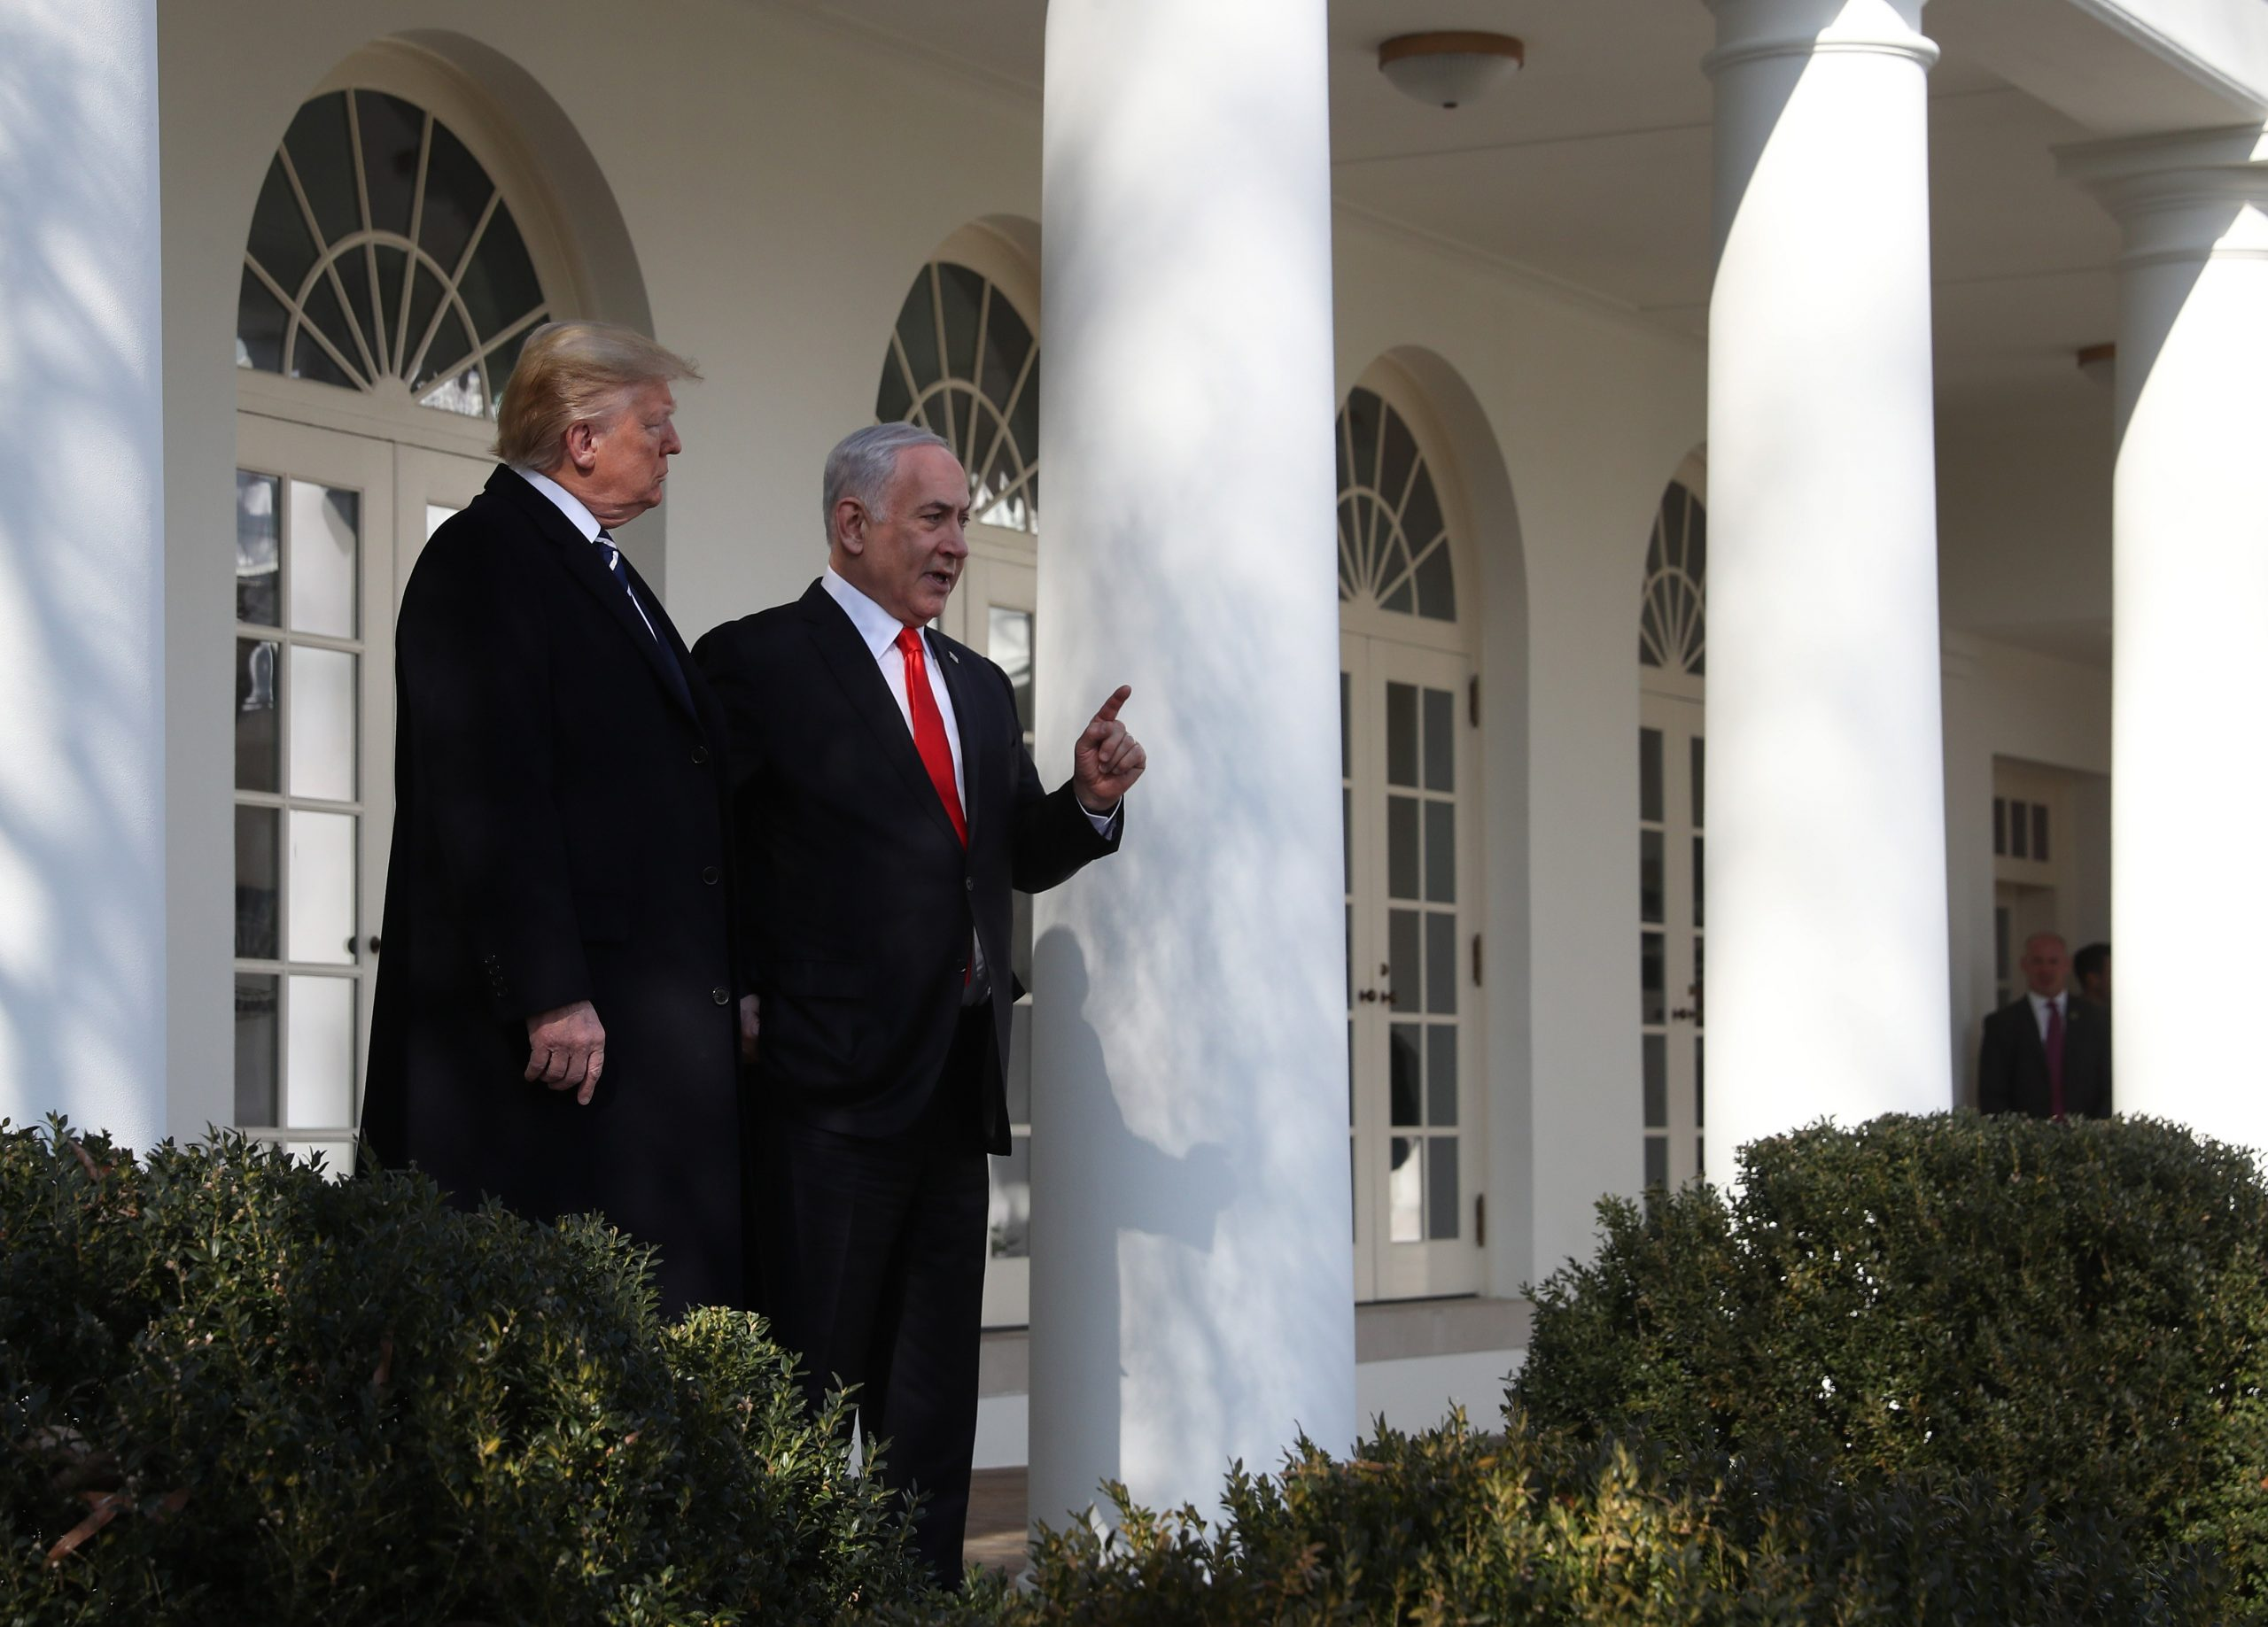 USA/Israel and OPT: Dismal 'peace deal' would exacerbate violations, enshrine impunity